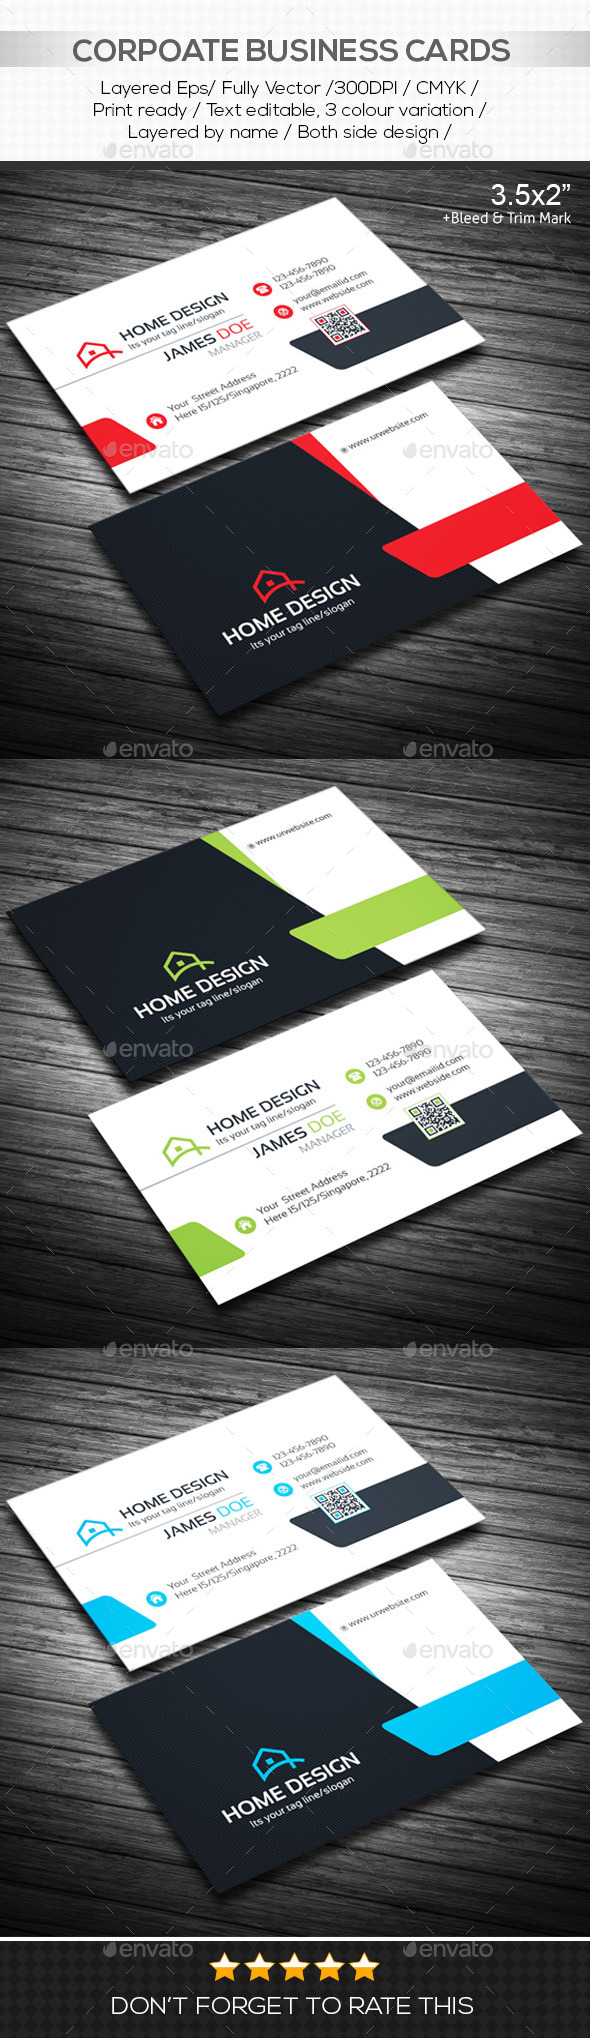 Chicken hatchery business cards templates free print at home stock photos Design business cards online free print home